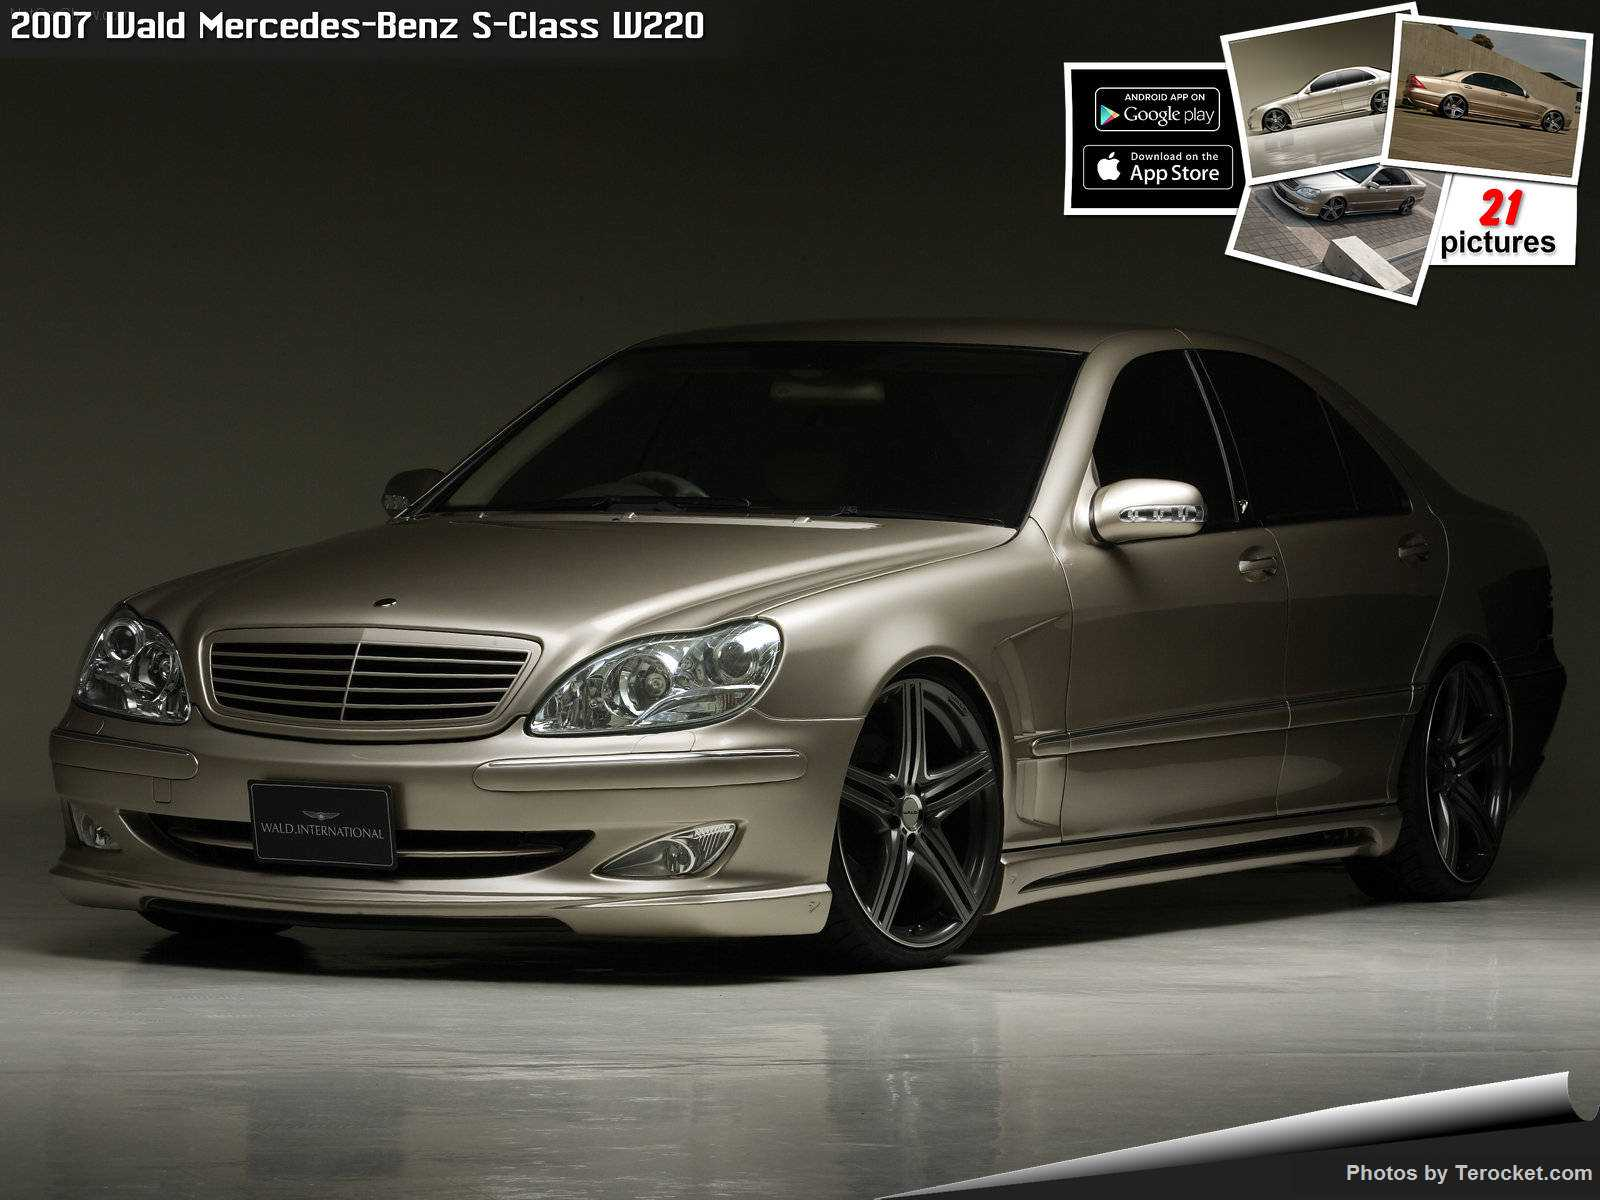 2007 wald mercedes benz s class w221 car photos catalog 2018 for Mercedes benz s class 2007